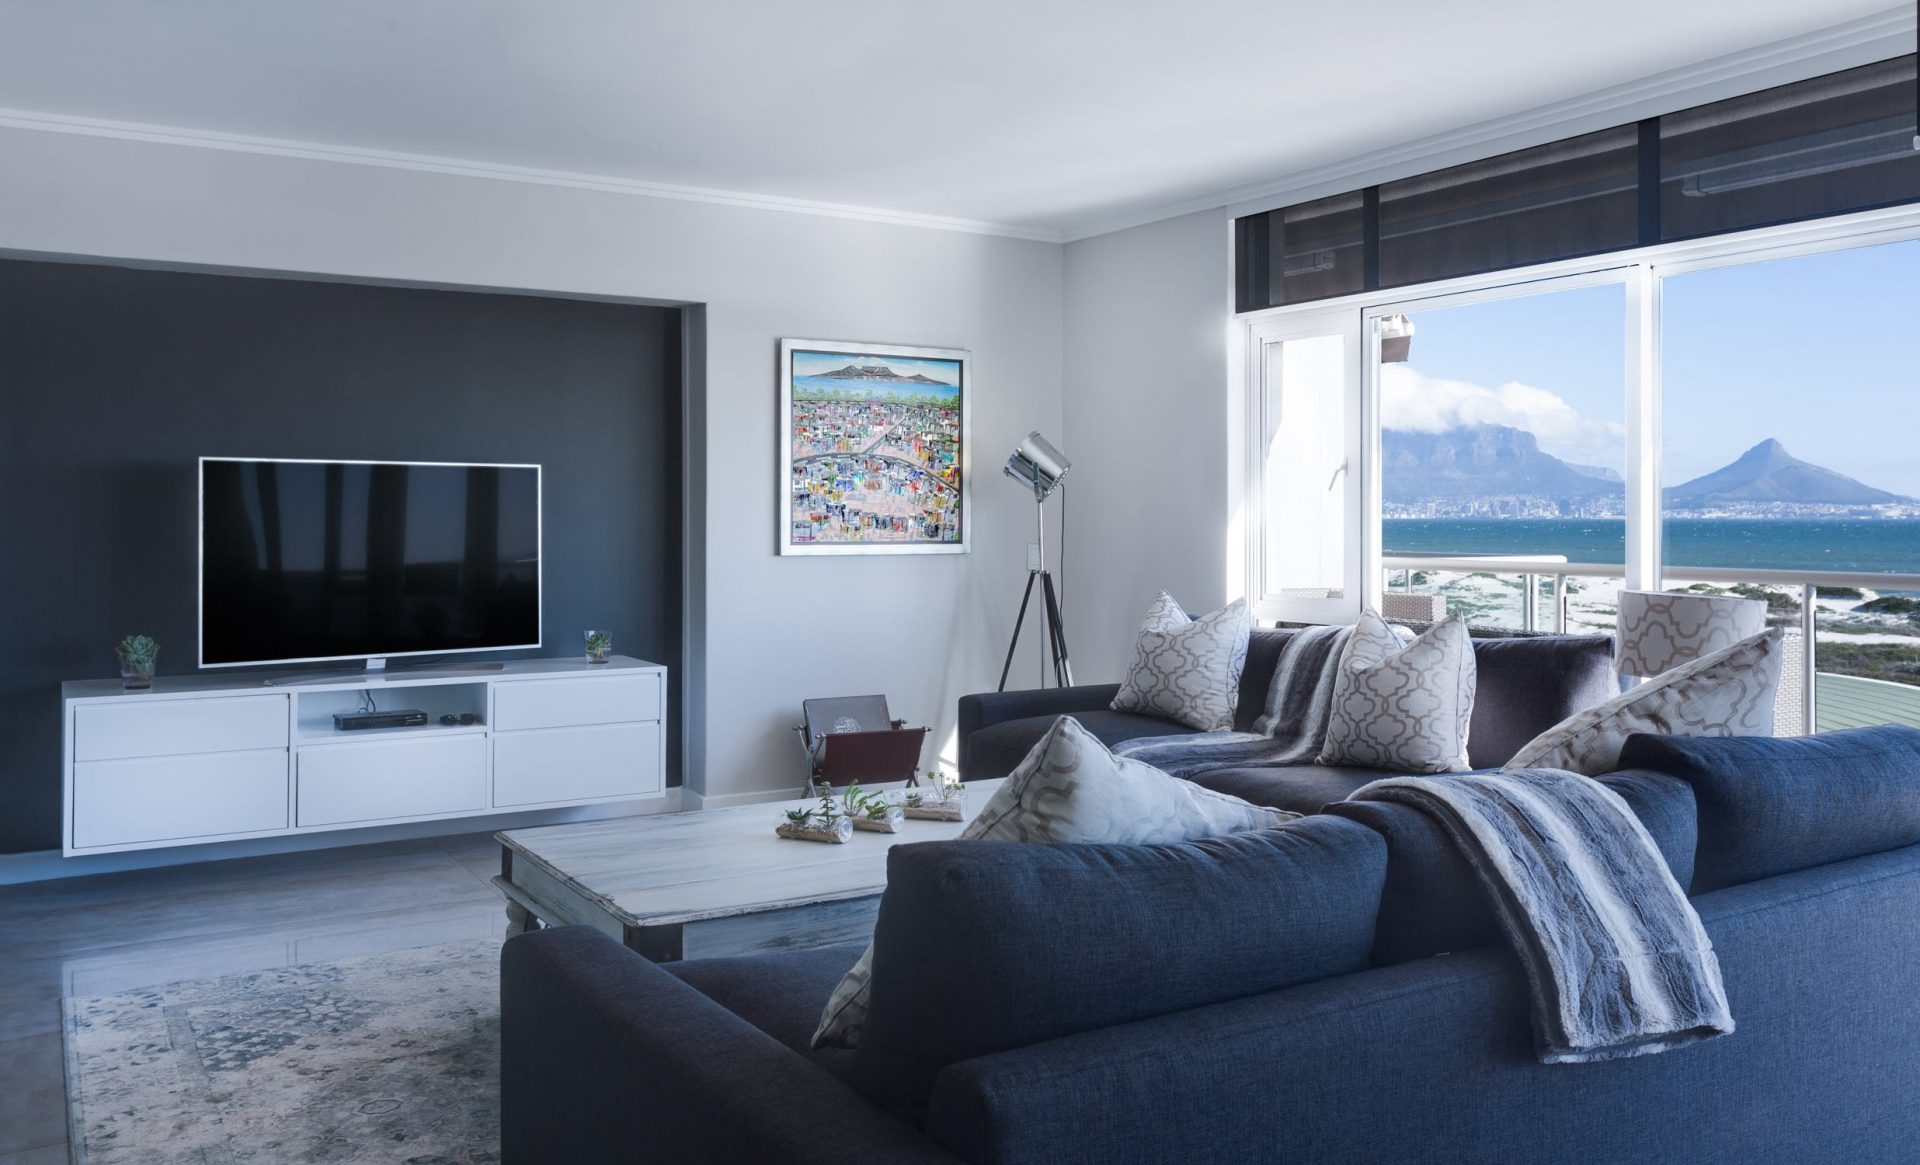 A modern living room of a luxury home in the Philippines | Luxury Homes by Brittany Corporation